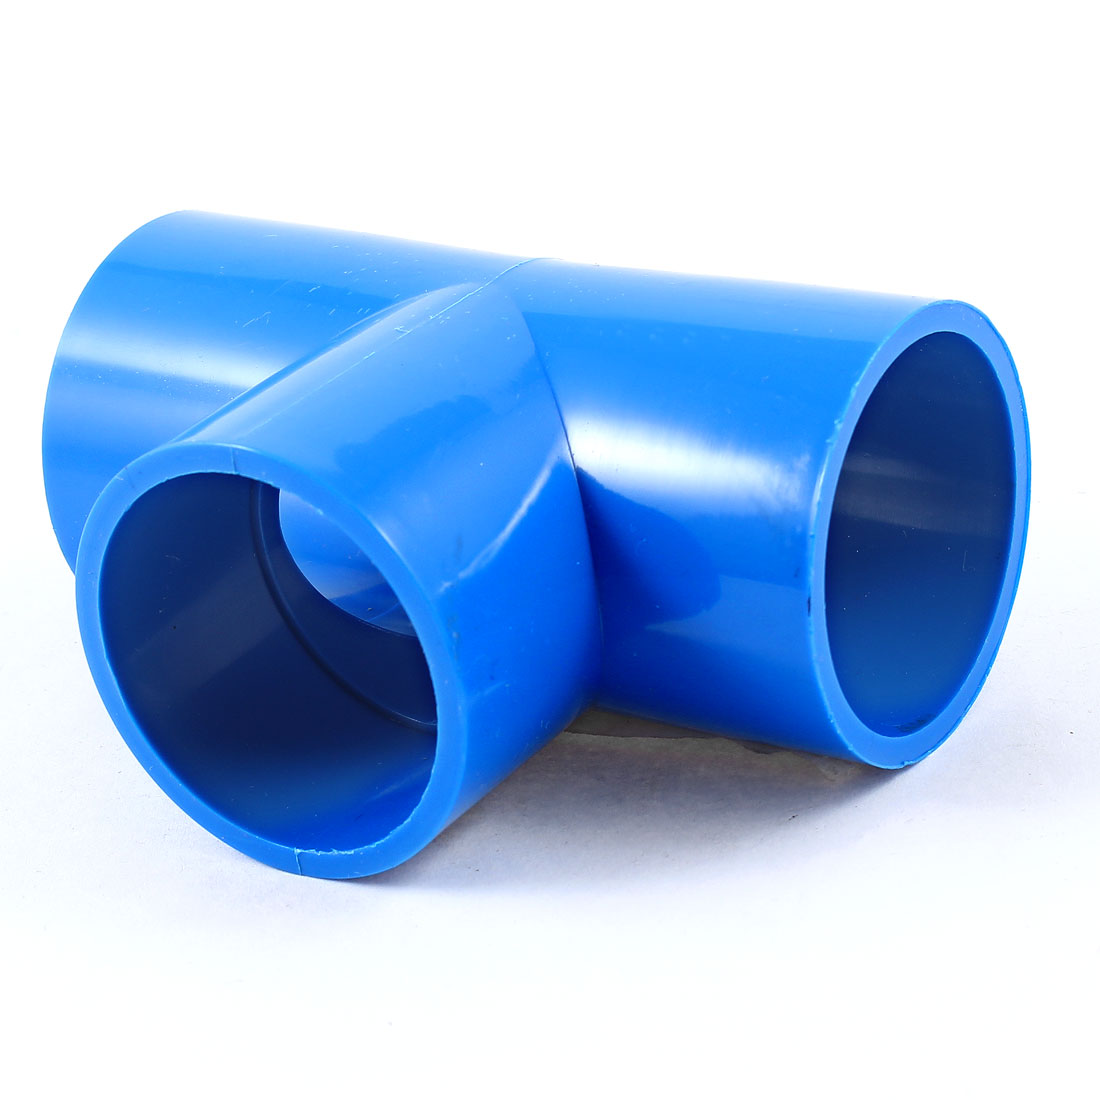 Unique Bargains 40mm Dia T Type PVC-U Conduit Pipe Fitting Connector Blue